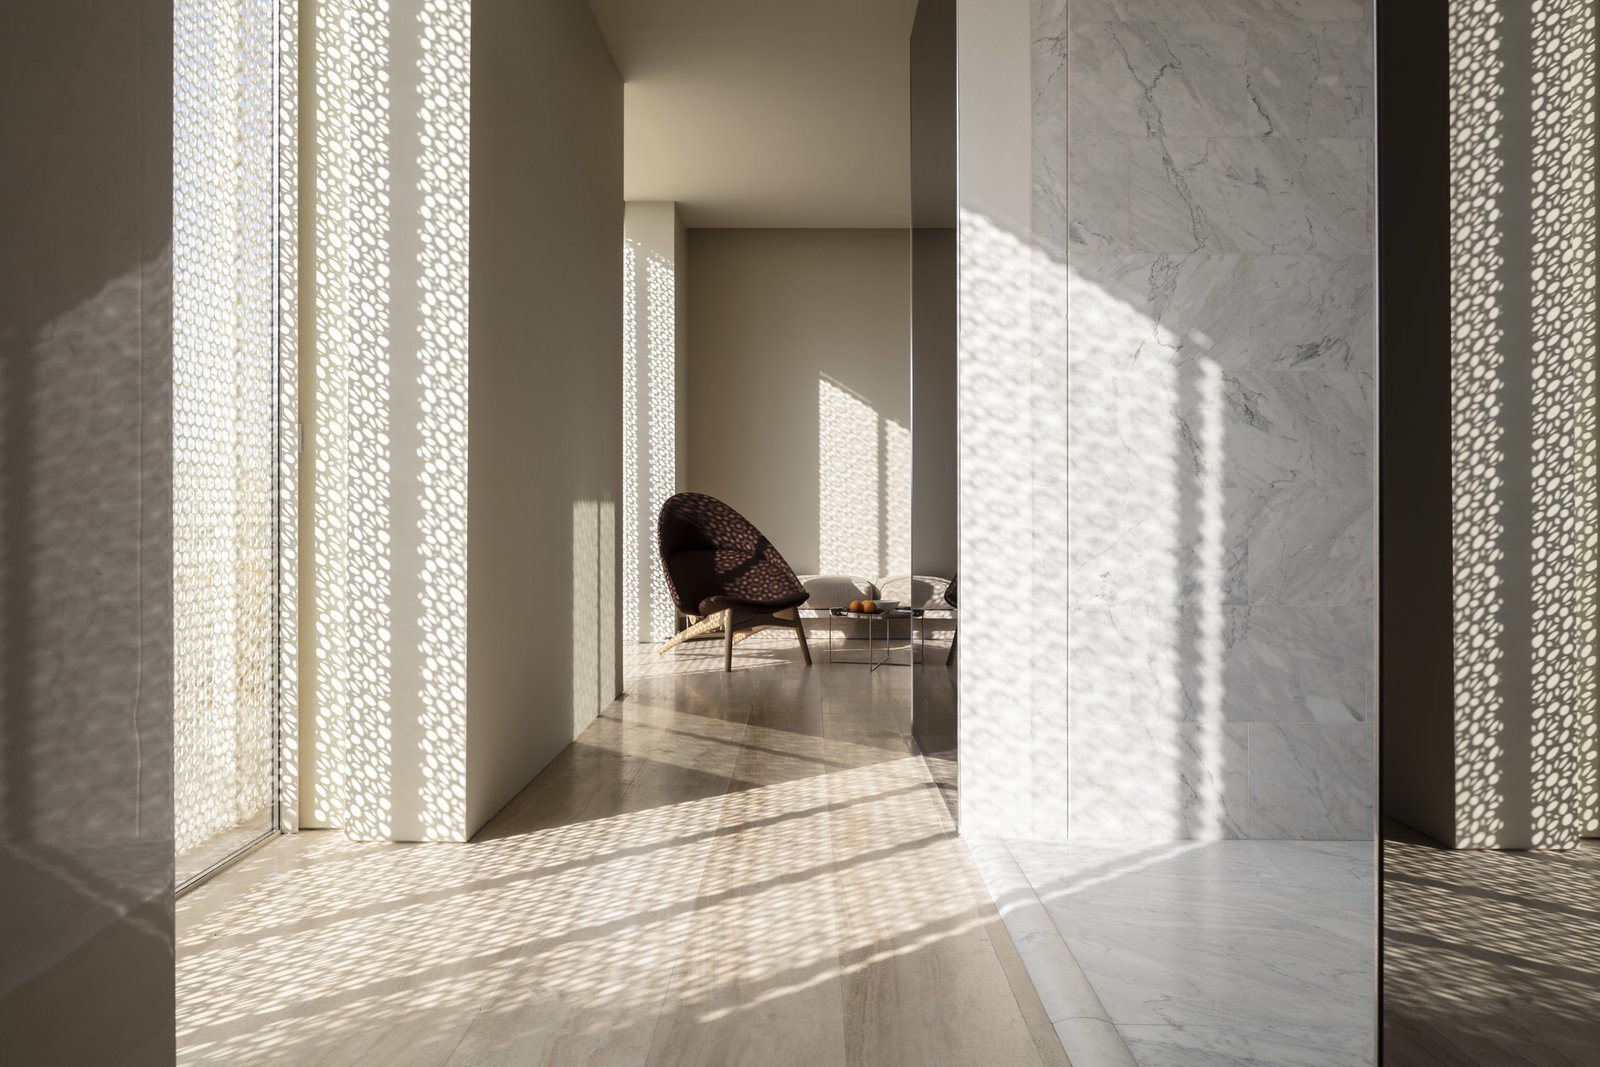 Bedroom, Chair, and Light Hardwood Floor Throughout the hotel, patterned screens known as Masharabiya complement contemporary motifs and patterns—Pawson's homage to traditional Middle Eastern architecture.   Jaffa Hotel from John Pawson Turns an Old Hospital and Convent Into a Luxe Hotel in Israel